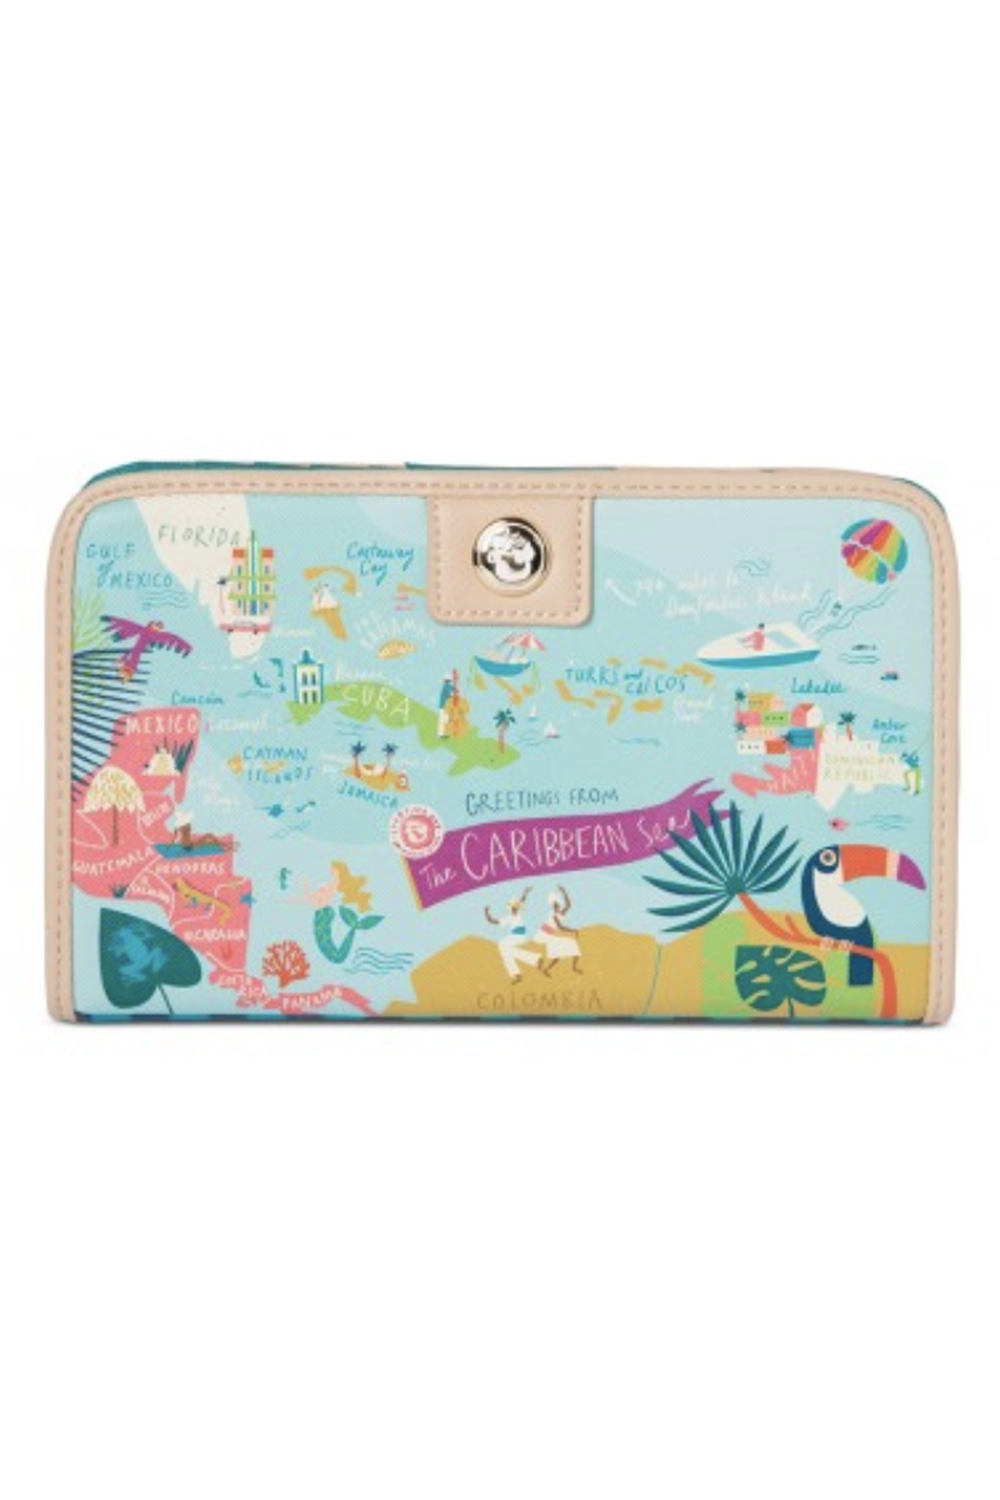 Destination Map Snap Wallet - Caribbean